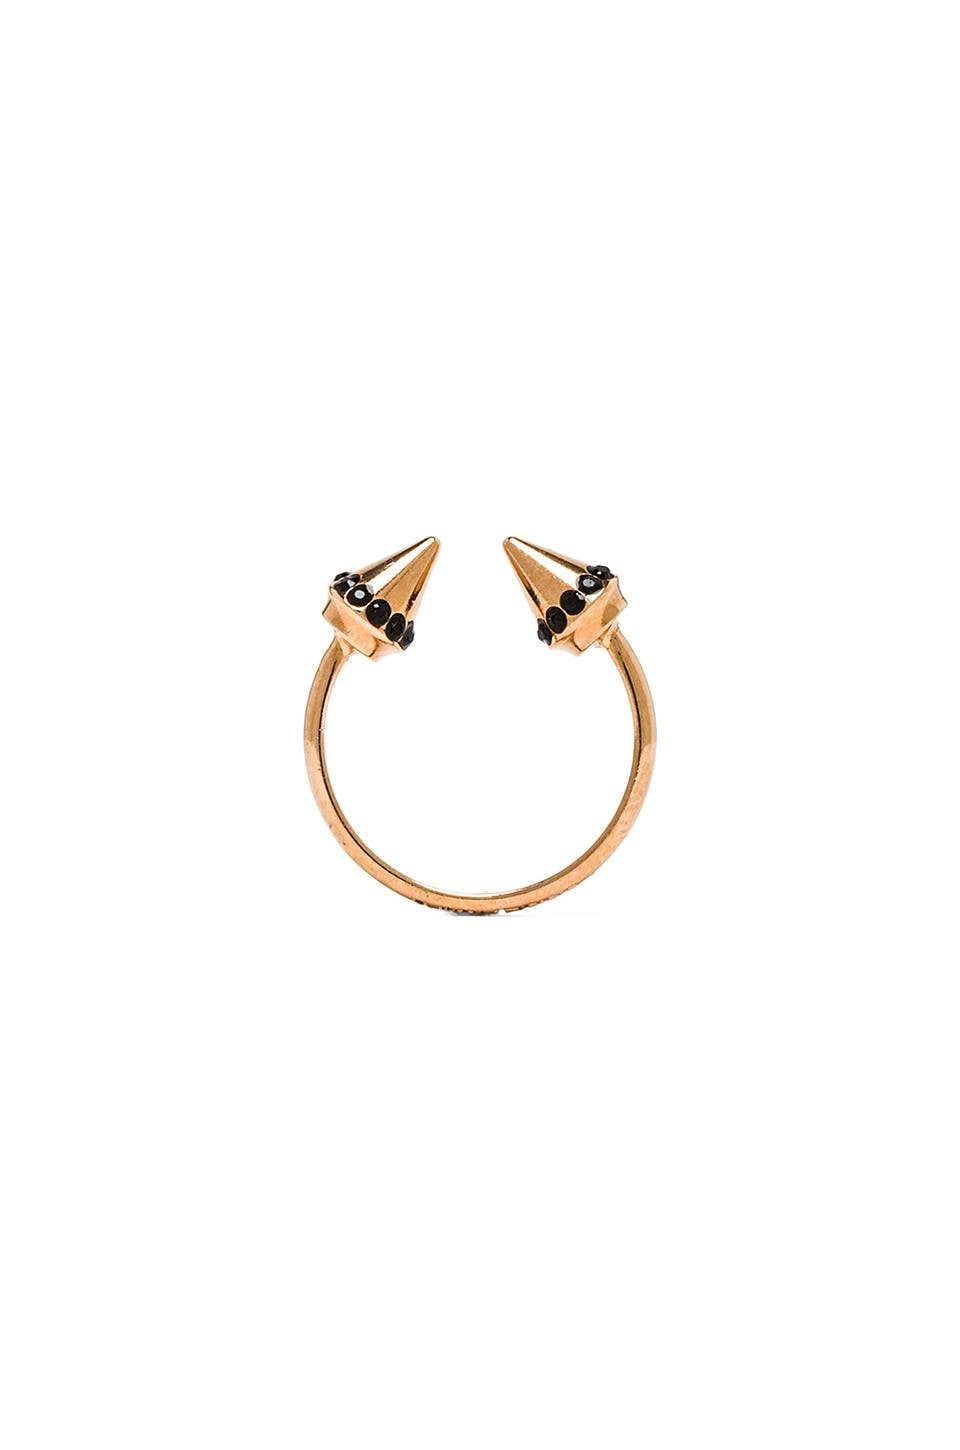 Vita Fede Ultra Mini Titan Ring in Rosegold & Black